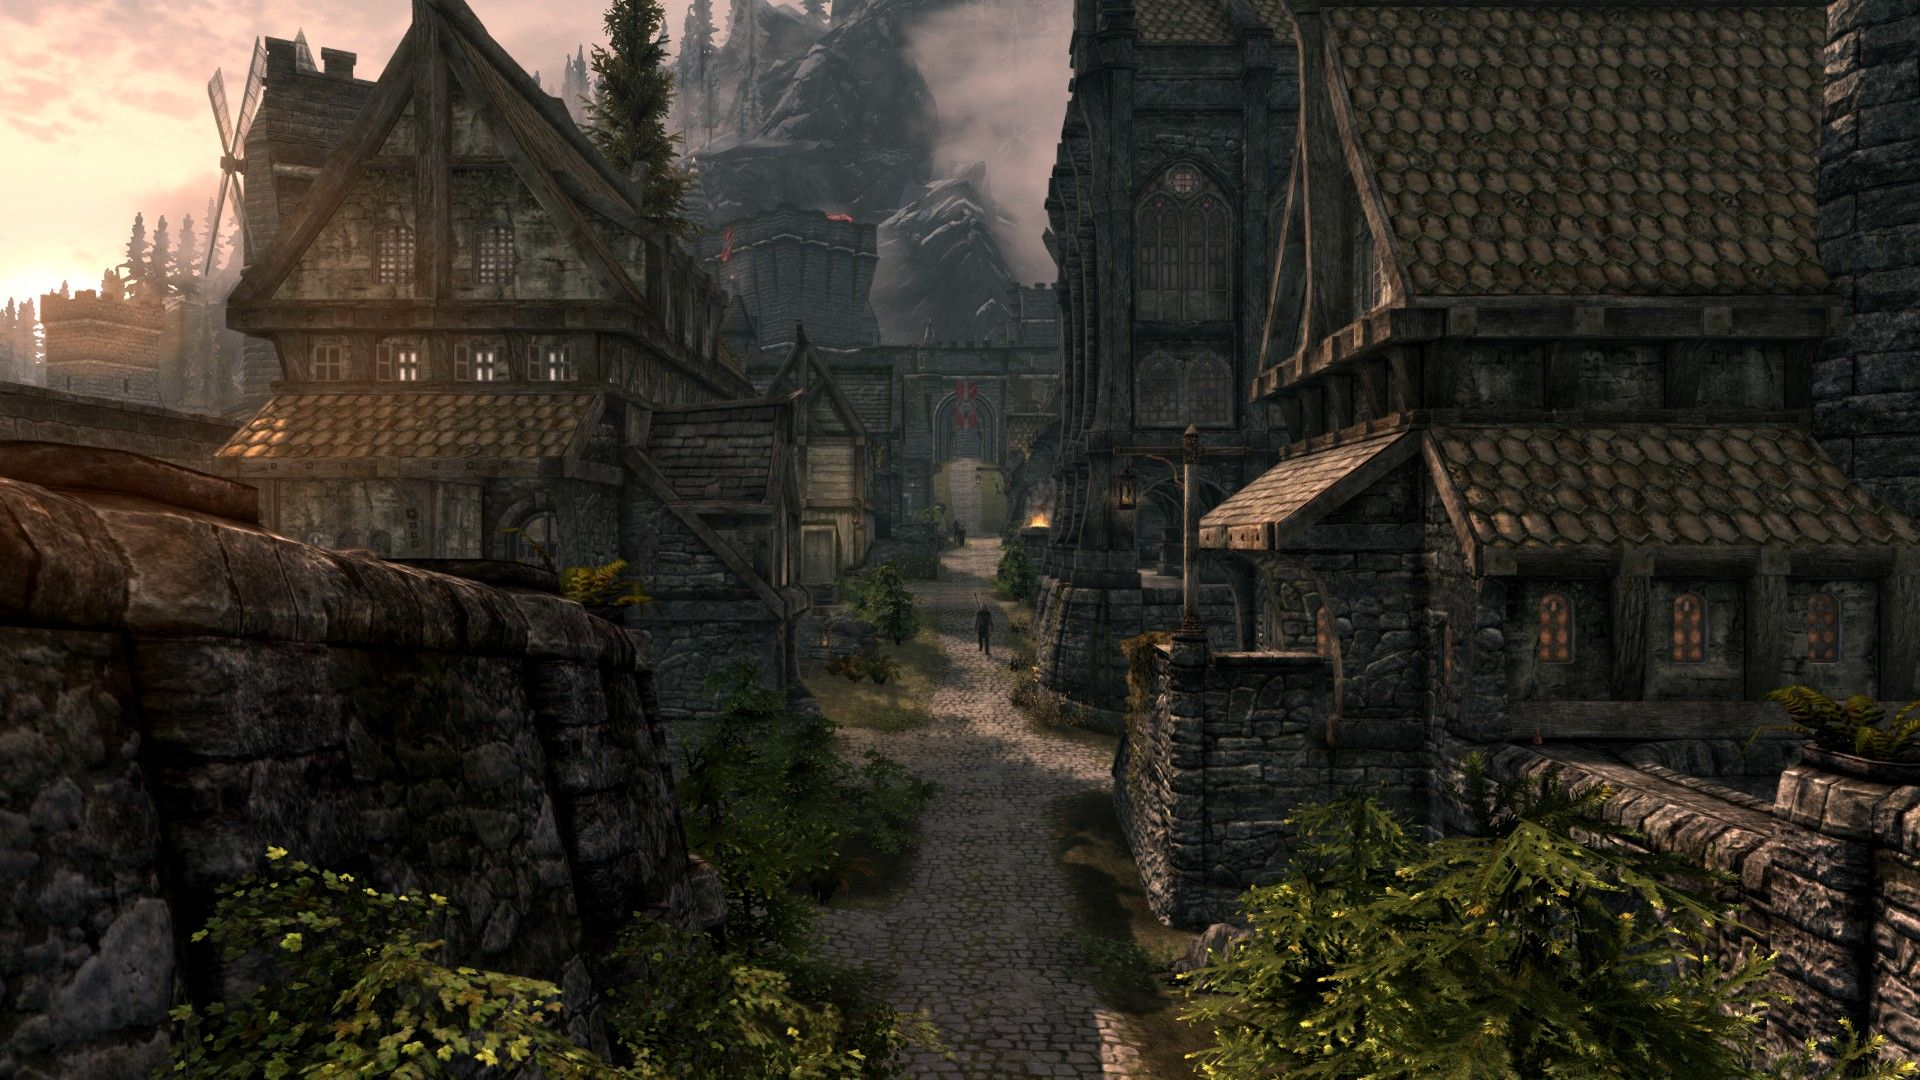 Can You Get Divorced In Skyrim An Architectural Response To The Elder Scrolls Skyrim Skyrim Wallpaper Skyrim Elder Scrolls Skyrim